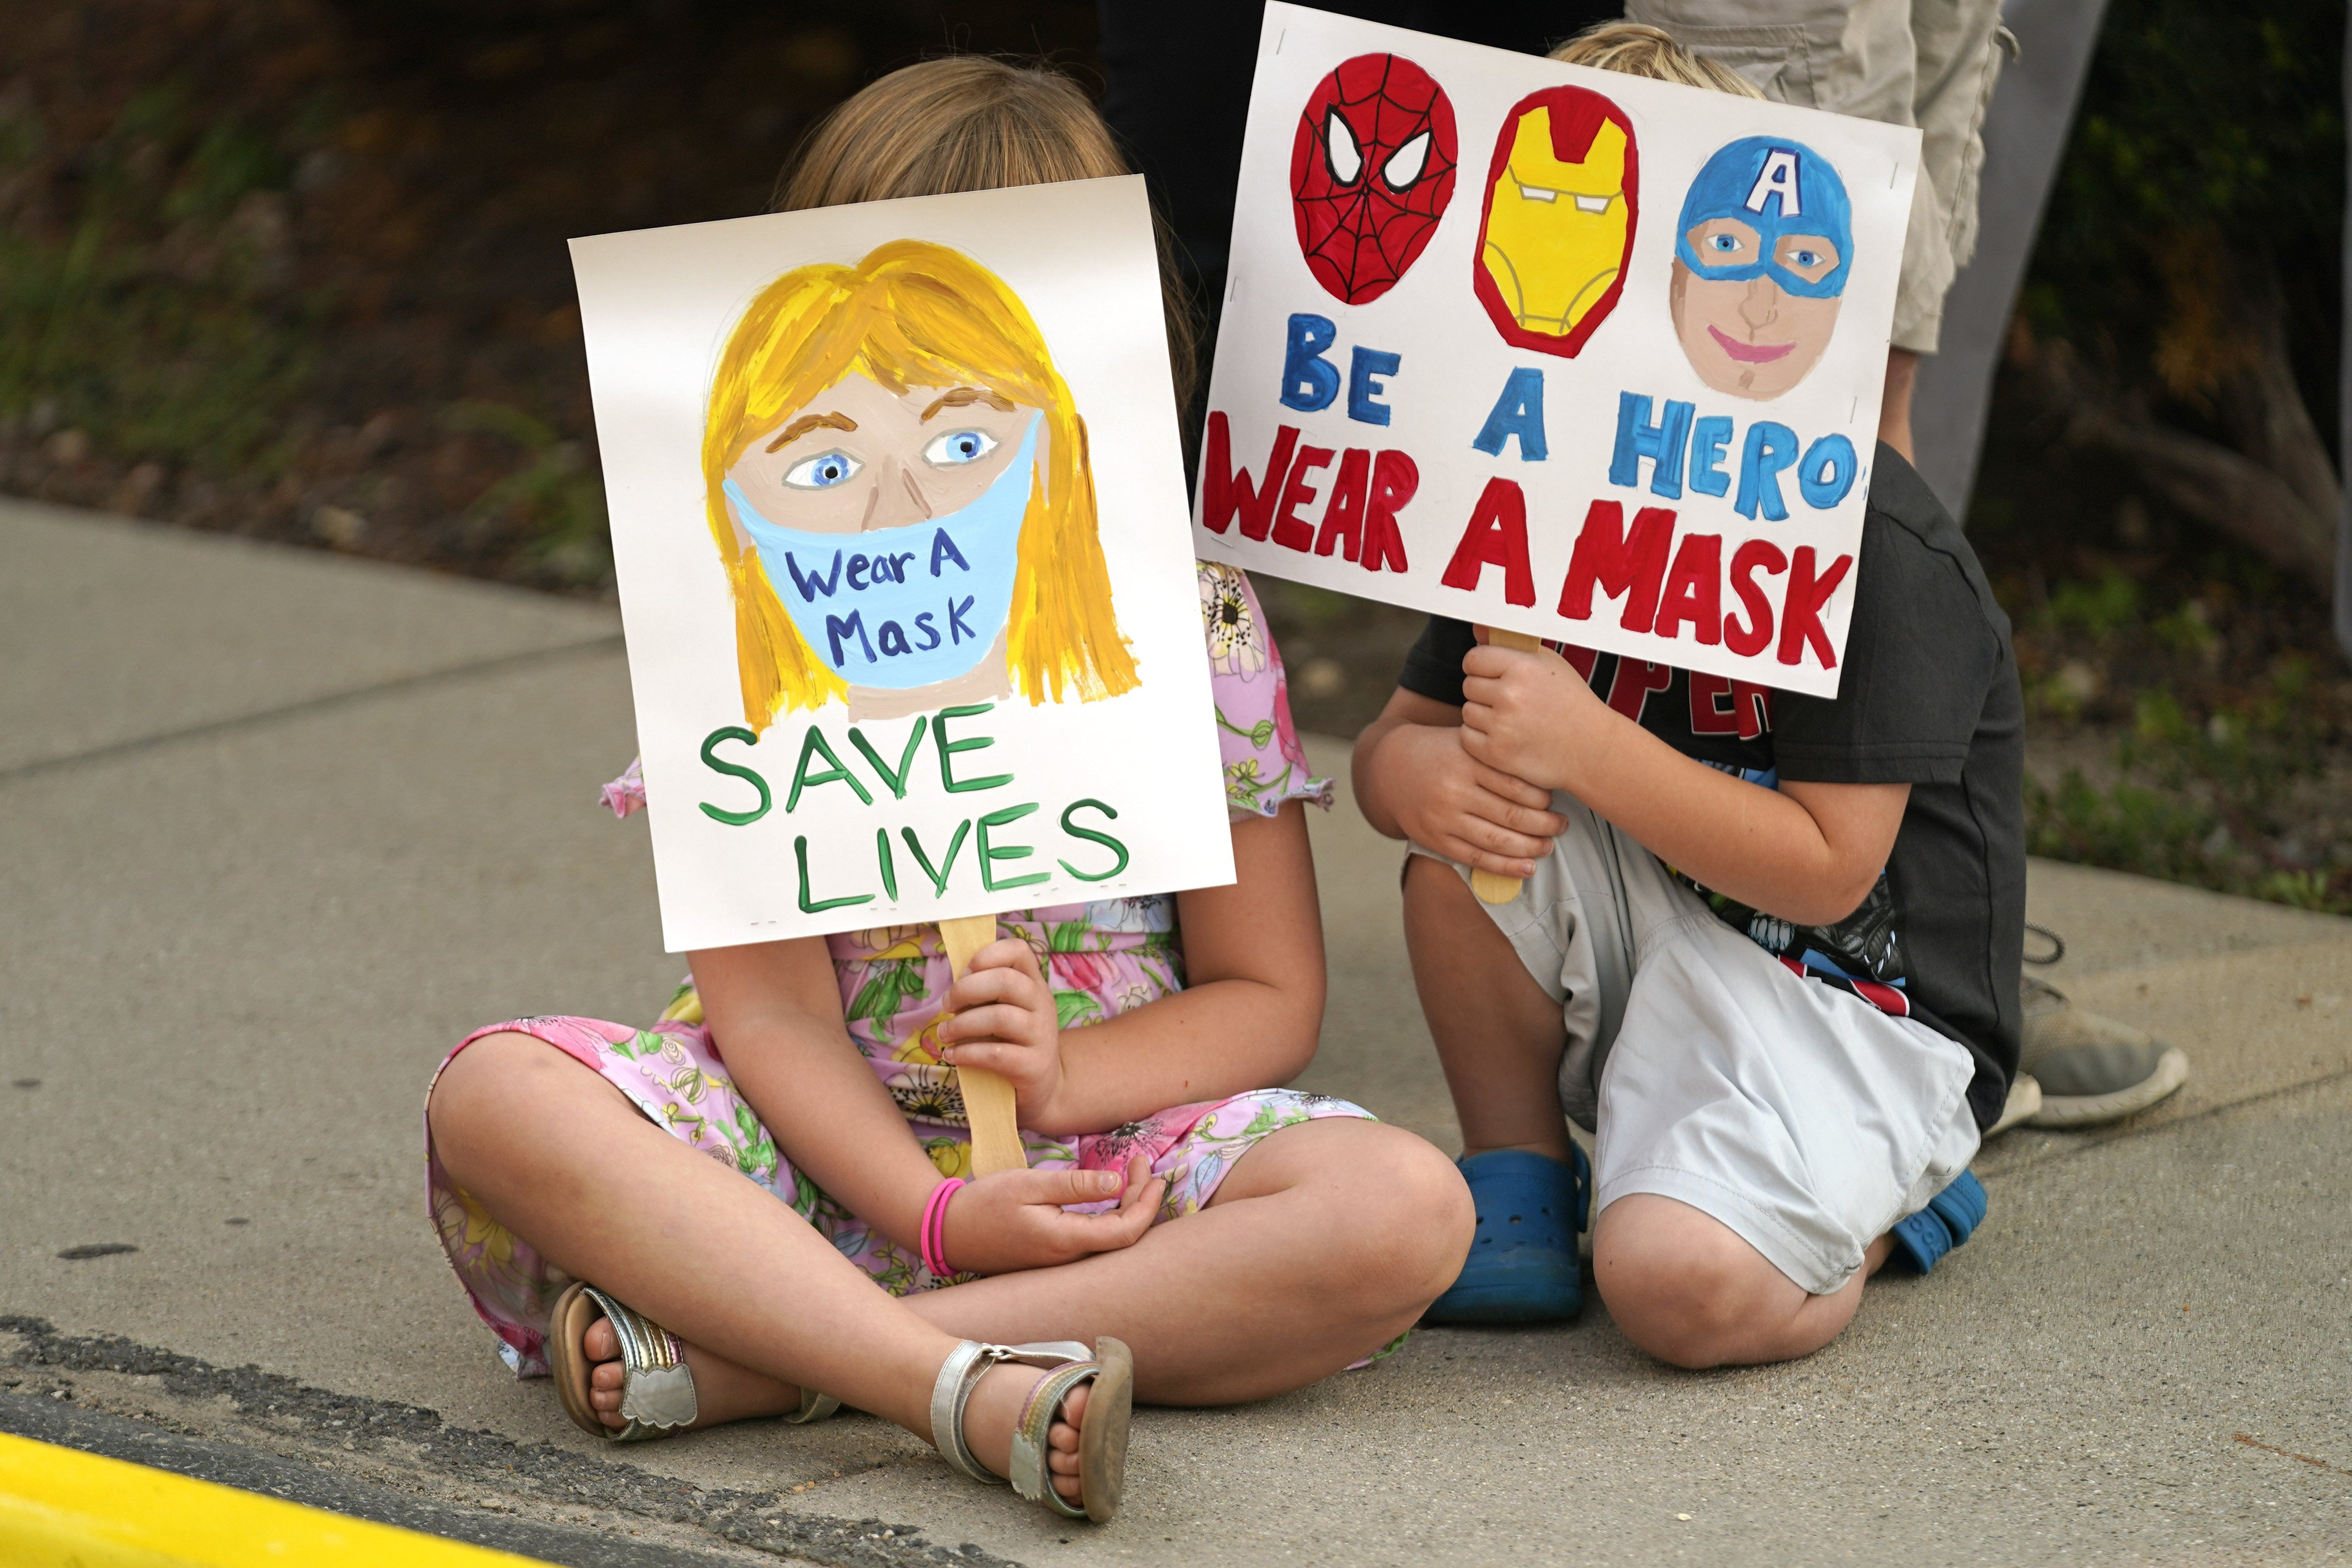 Lucie Phillips, 6, and her brother David Phillips, 3, join parents and students during a rally at the Utah State School Board Office calling for a mask mandate on Aug. 6. [AP PHOTO/RICK BOWMER]